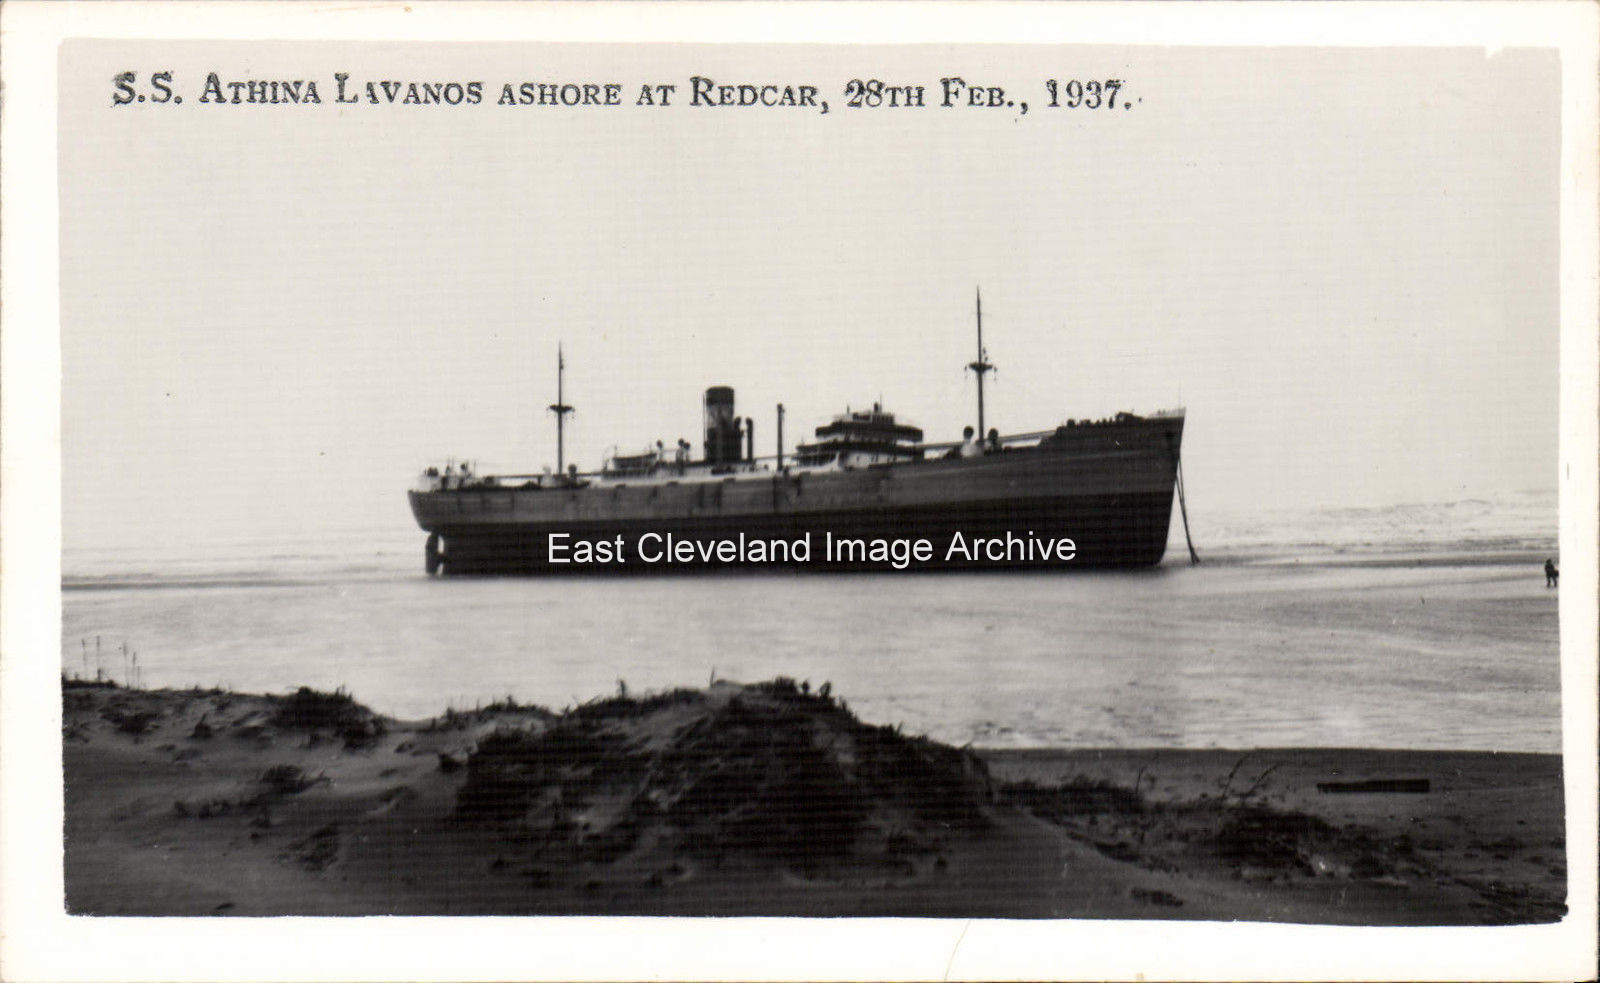 Shipwrecks « East Cleveland Image Archive